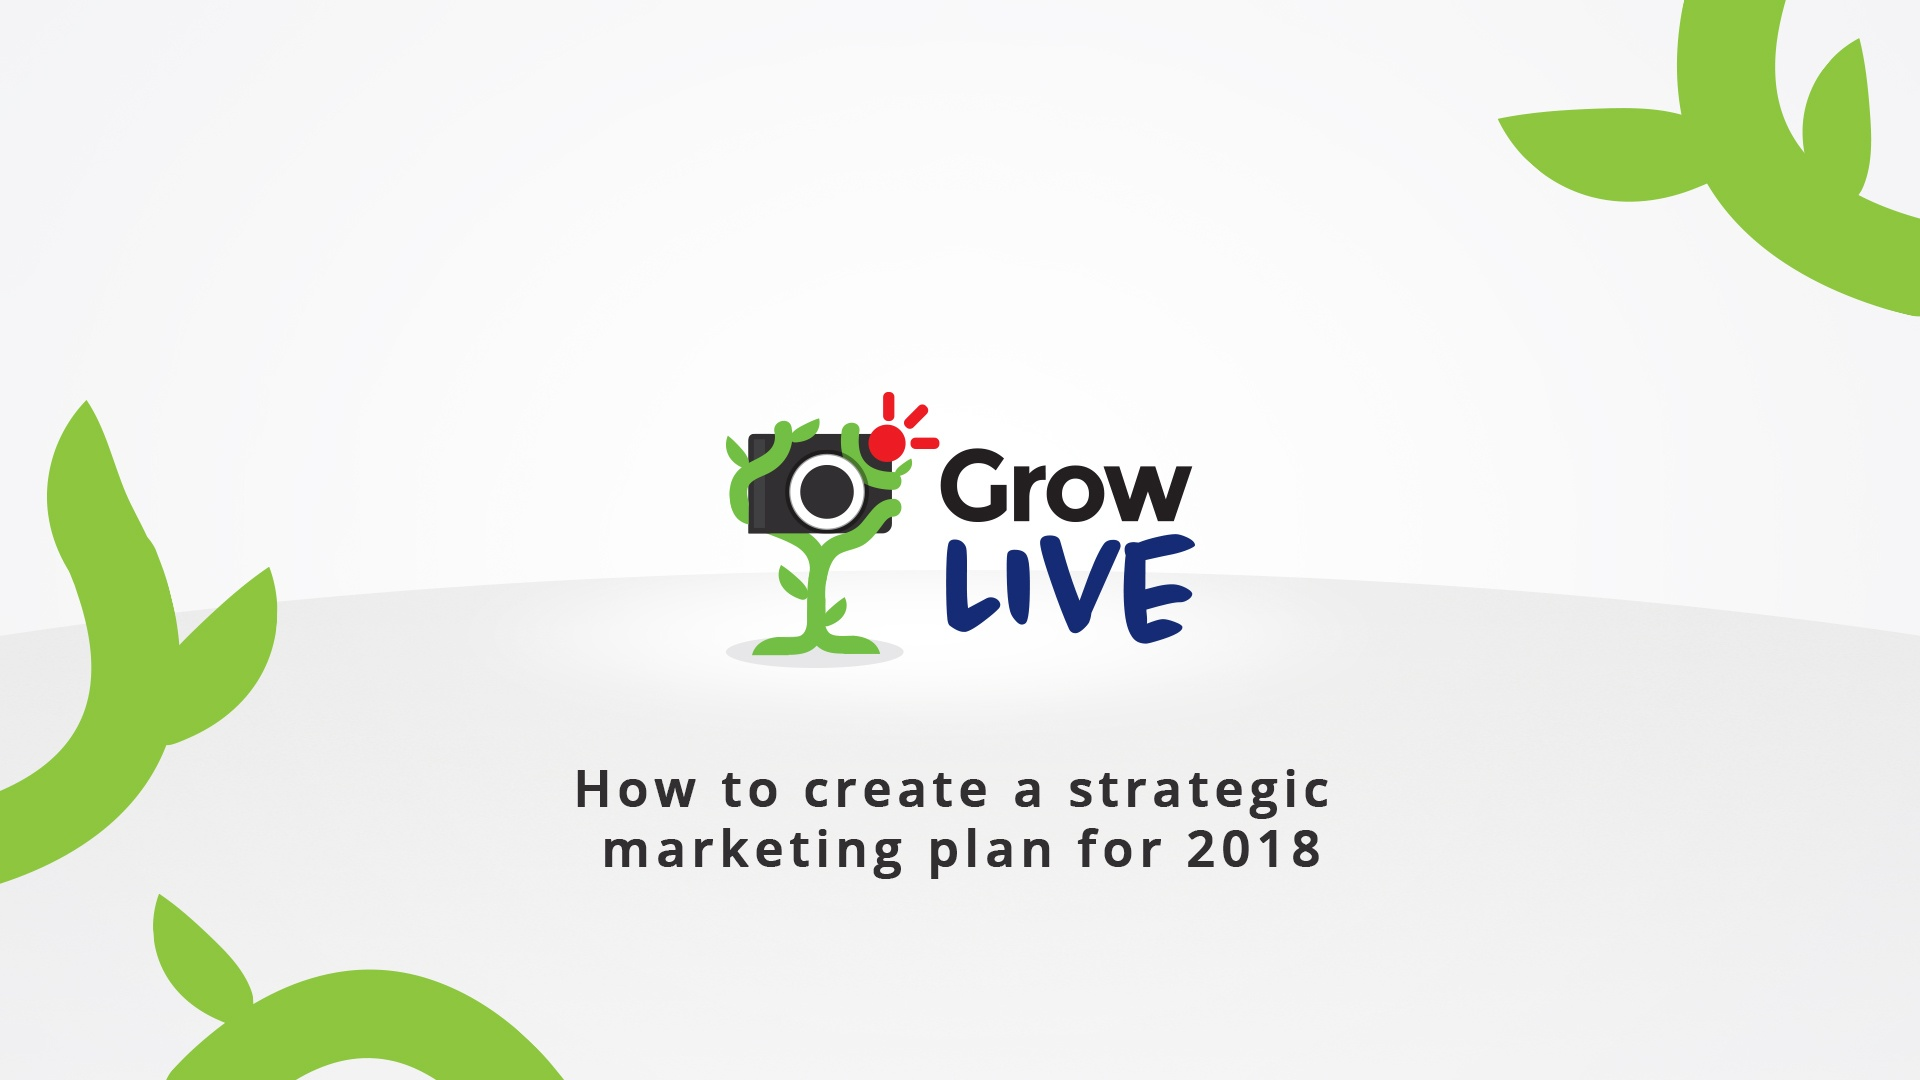 14 - Grow Live - How to create a strategic marketing plan for 2018.jpg